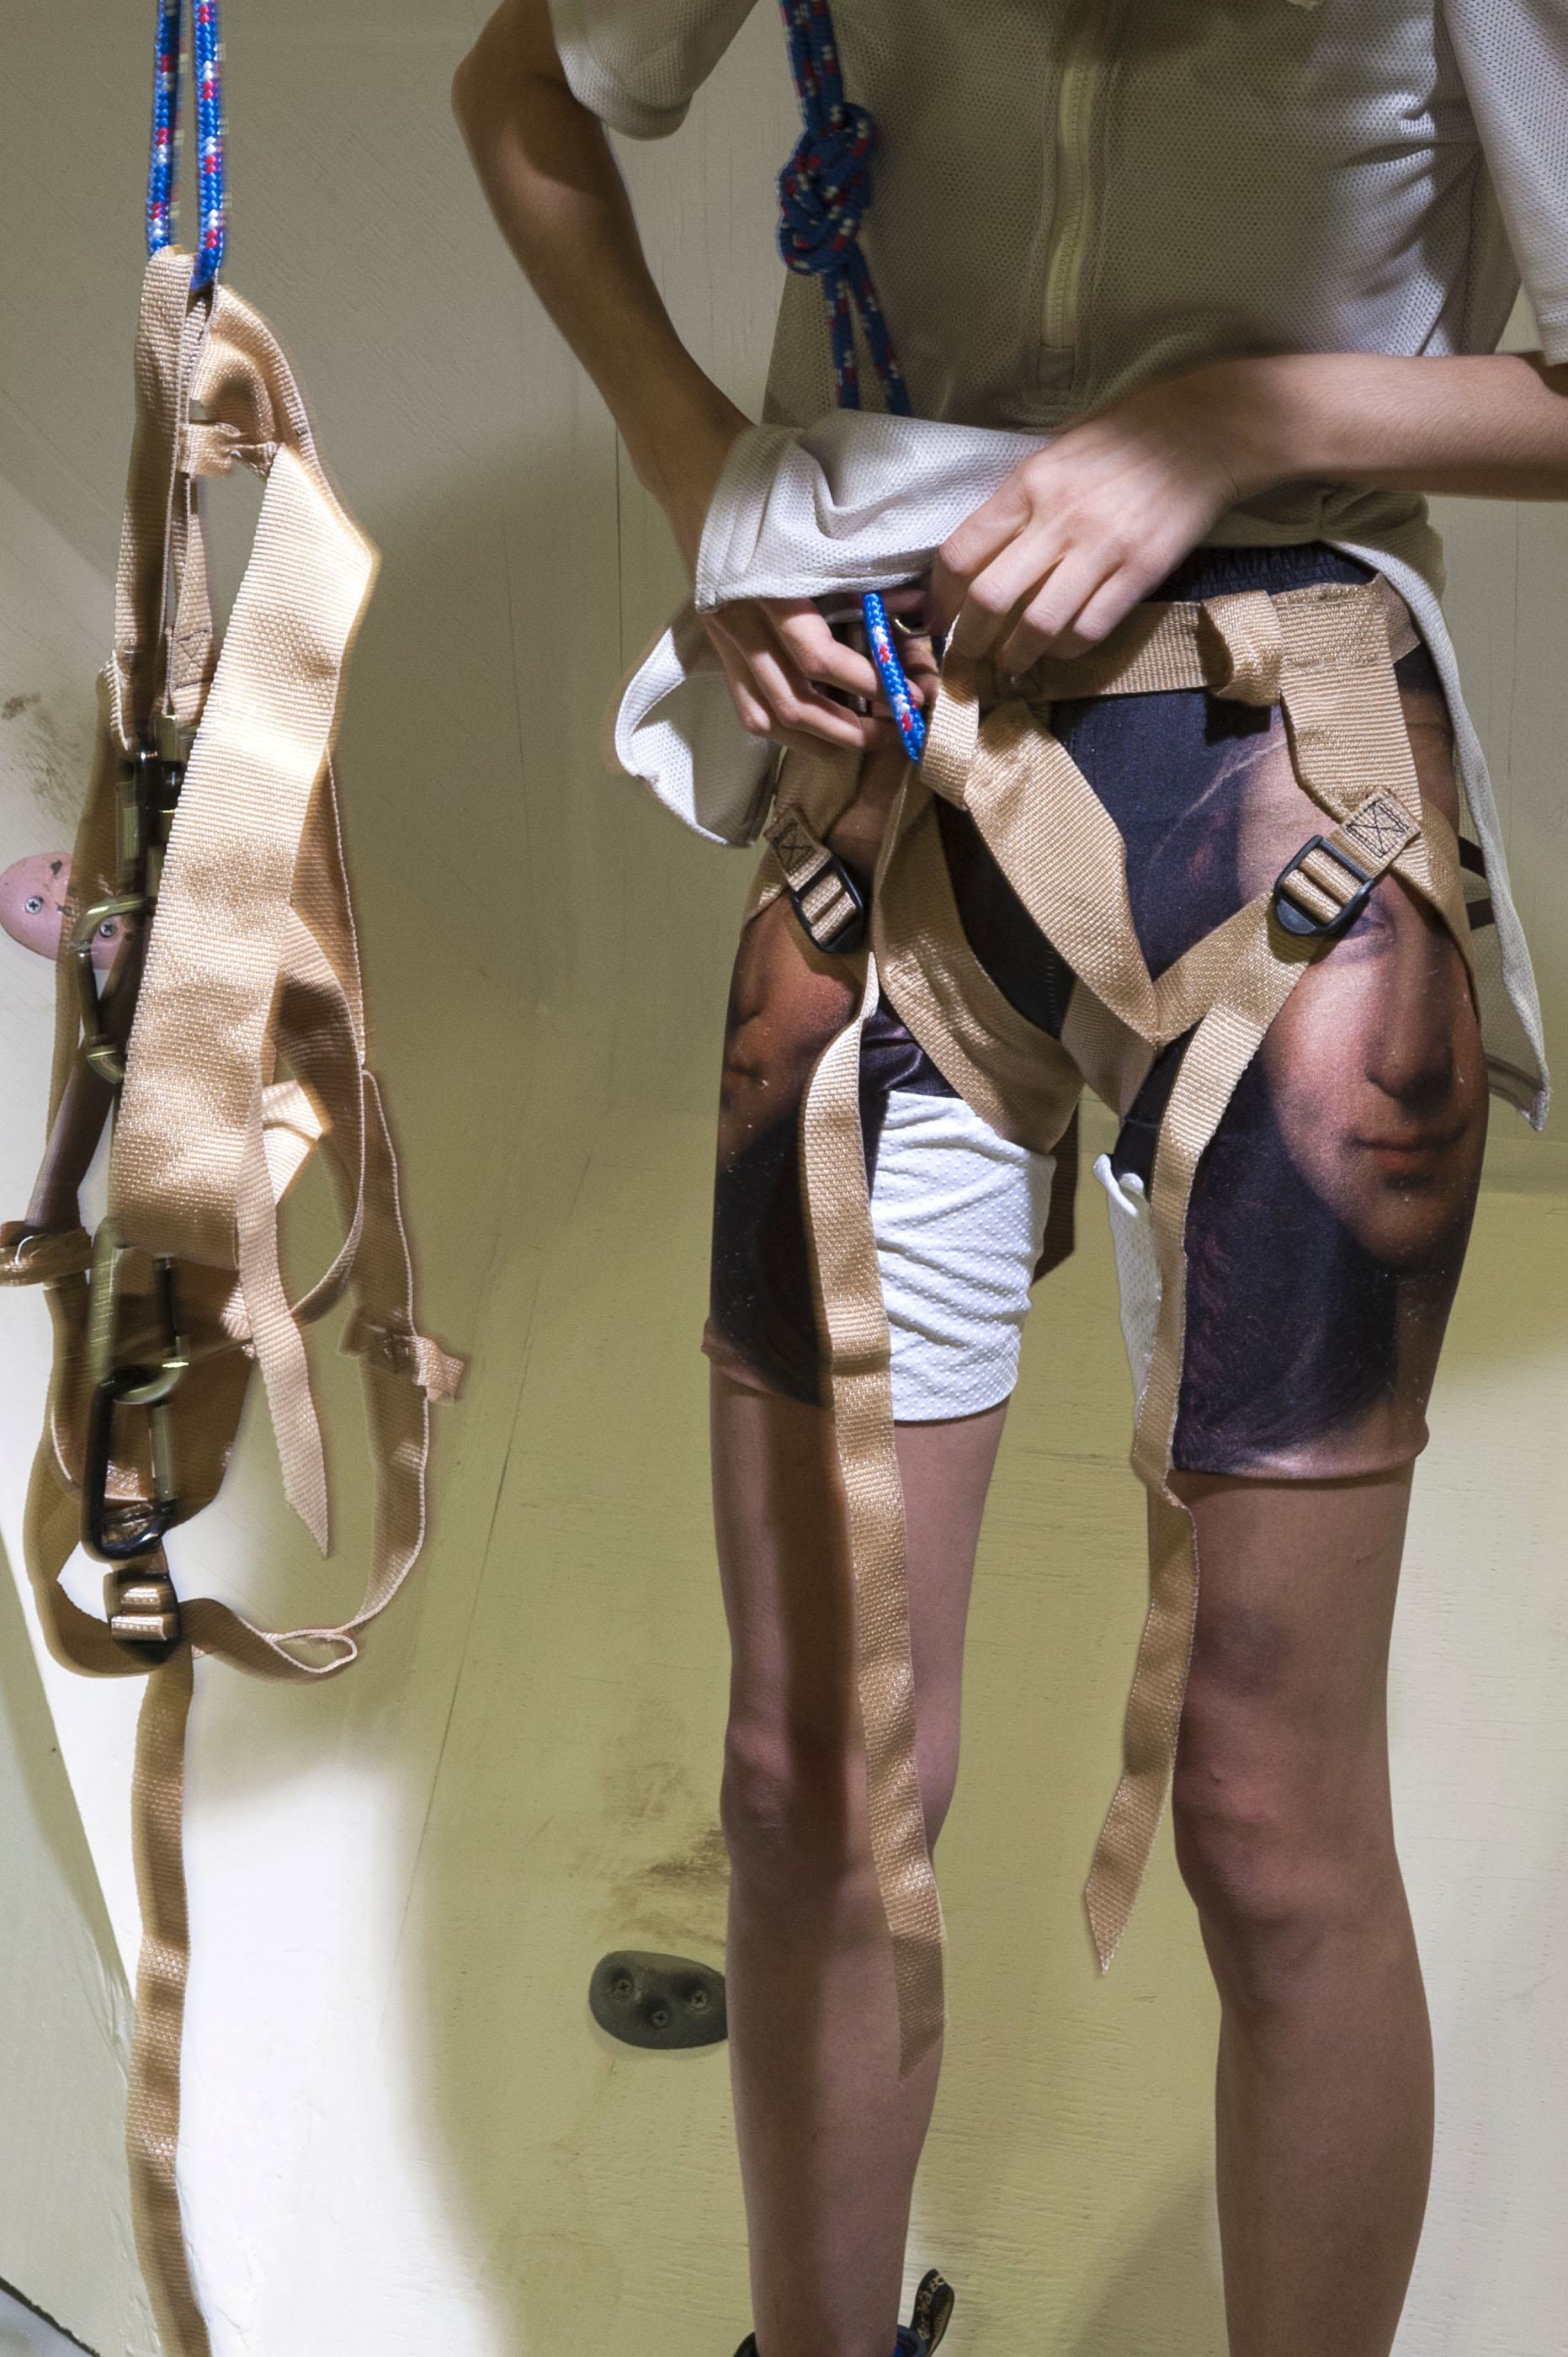 Kim interacting with the belay system wearing personalized climbing attire.